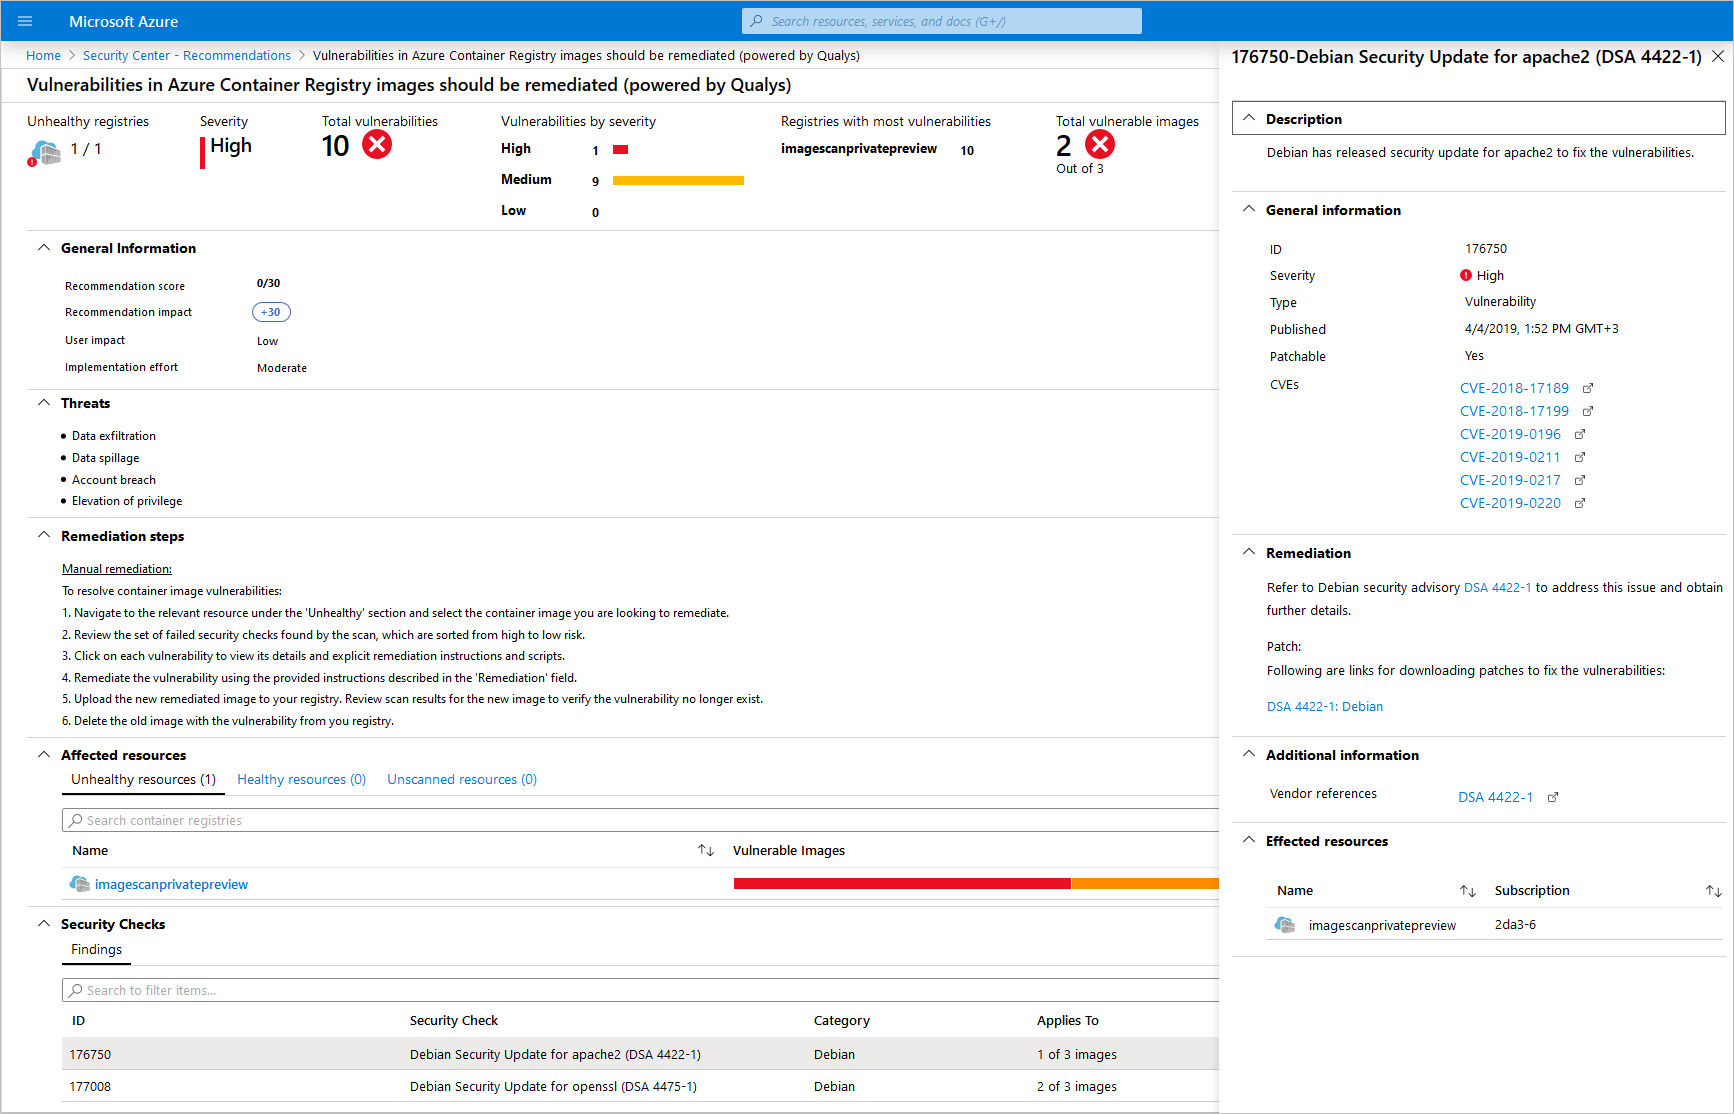 Sample Azure Security Center recommendation about vulnerabilities discovered in an Azure Container Registry (ACR) hosted image